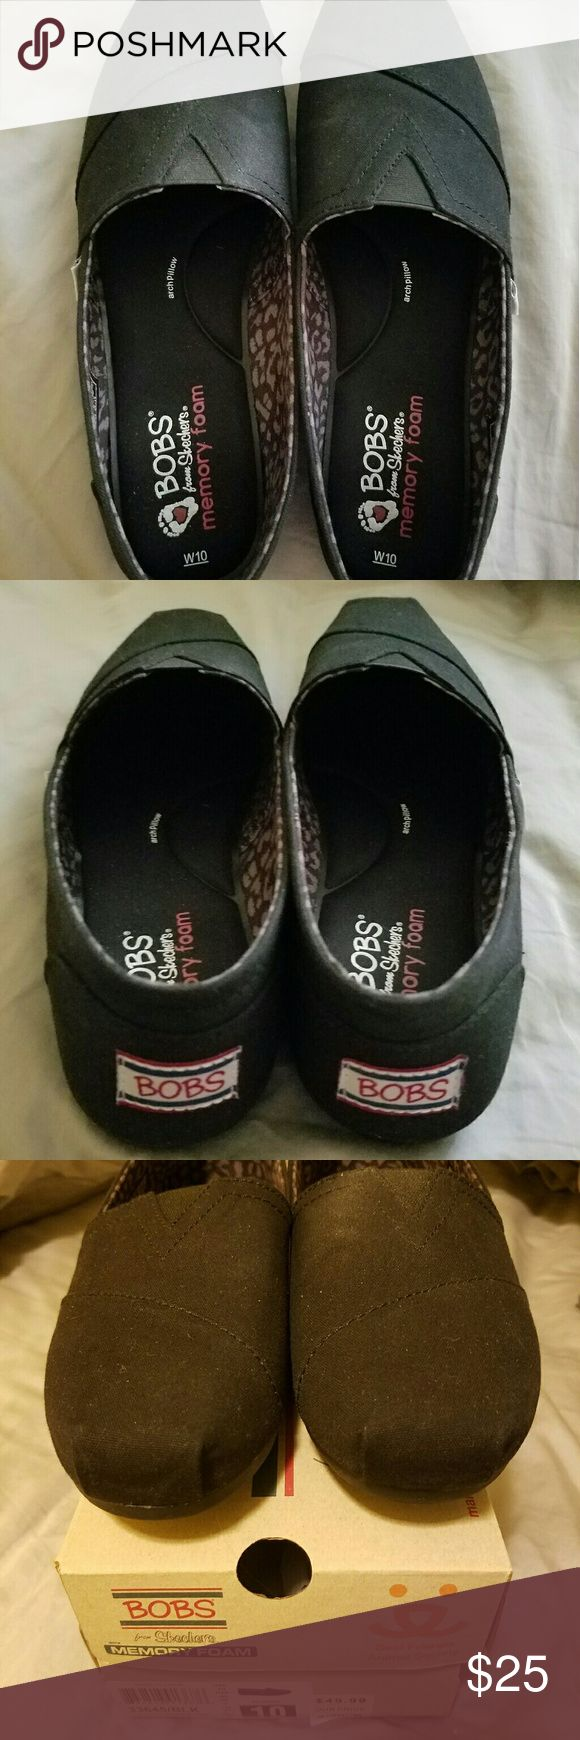 Black Pair of Bob's Shoes Only wore once, they are a little big for me.  Size 10W, have the original box.  Smoke free and pet free home. Skechers Shoes